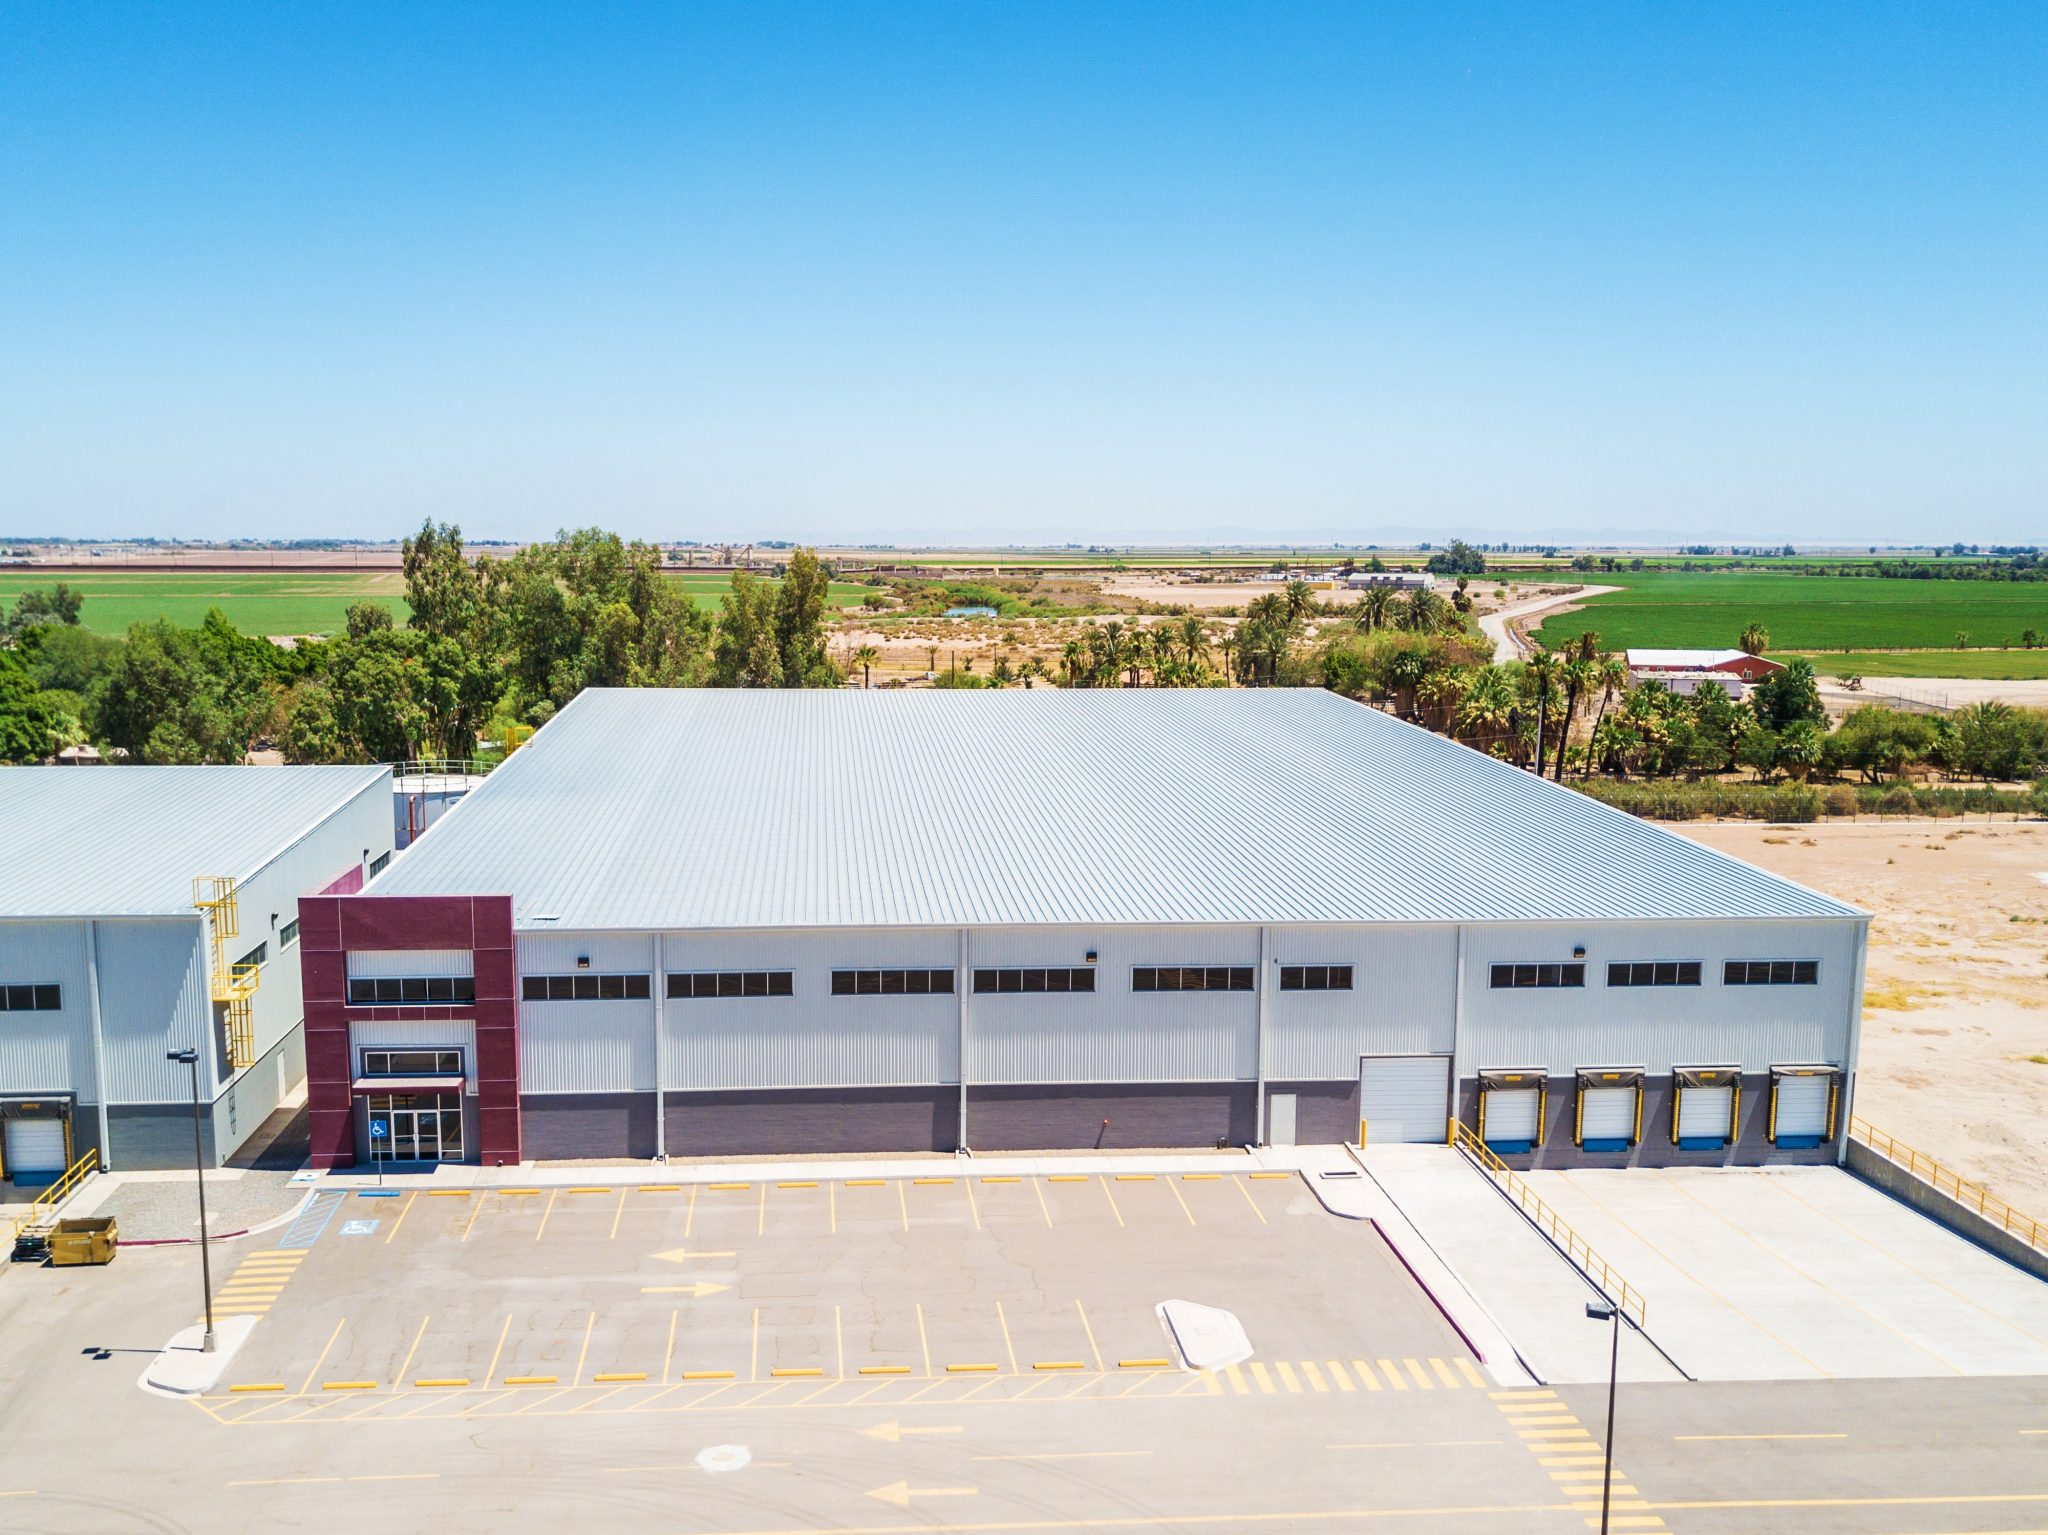 Aerial view of storage, distribution and logistics center for sale in Mexico